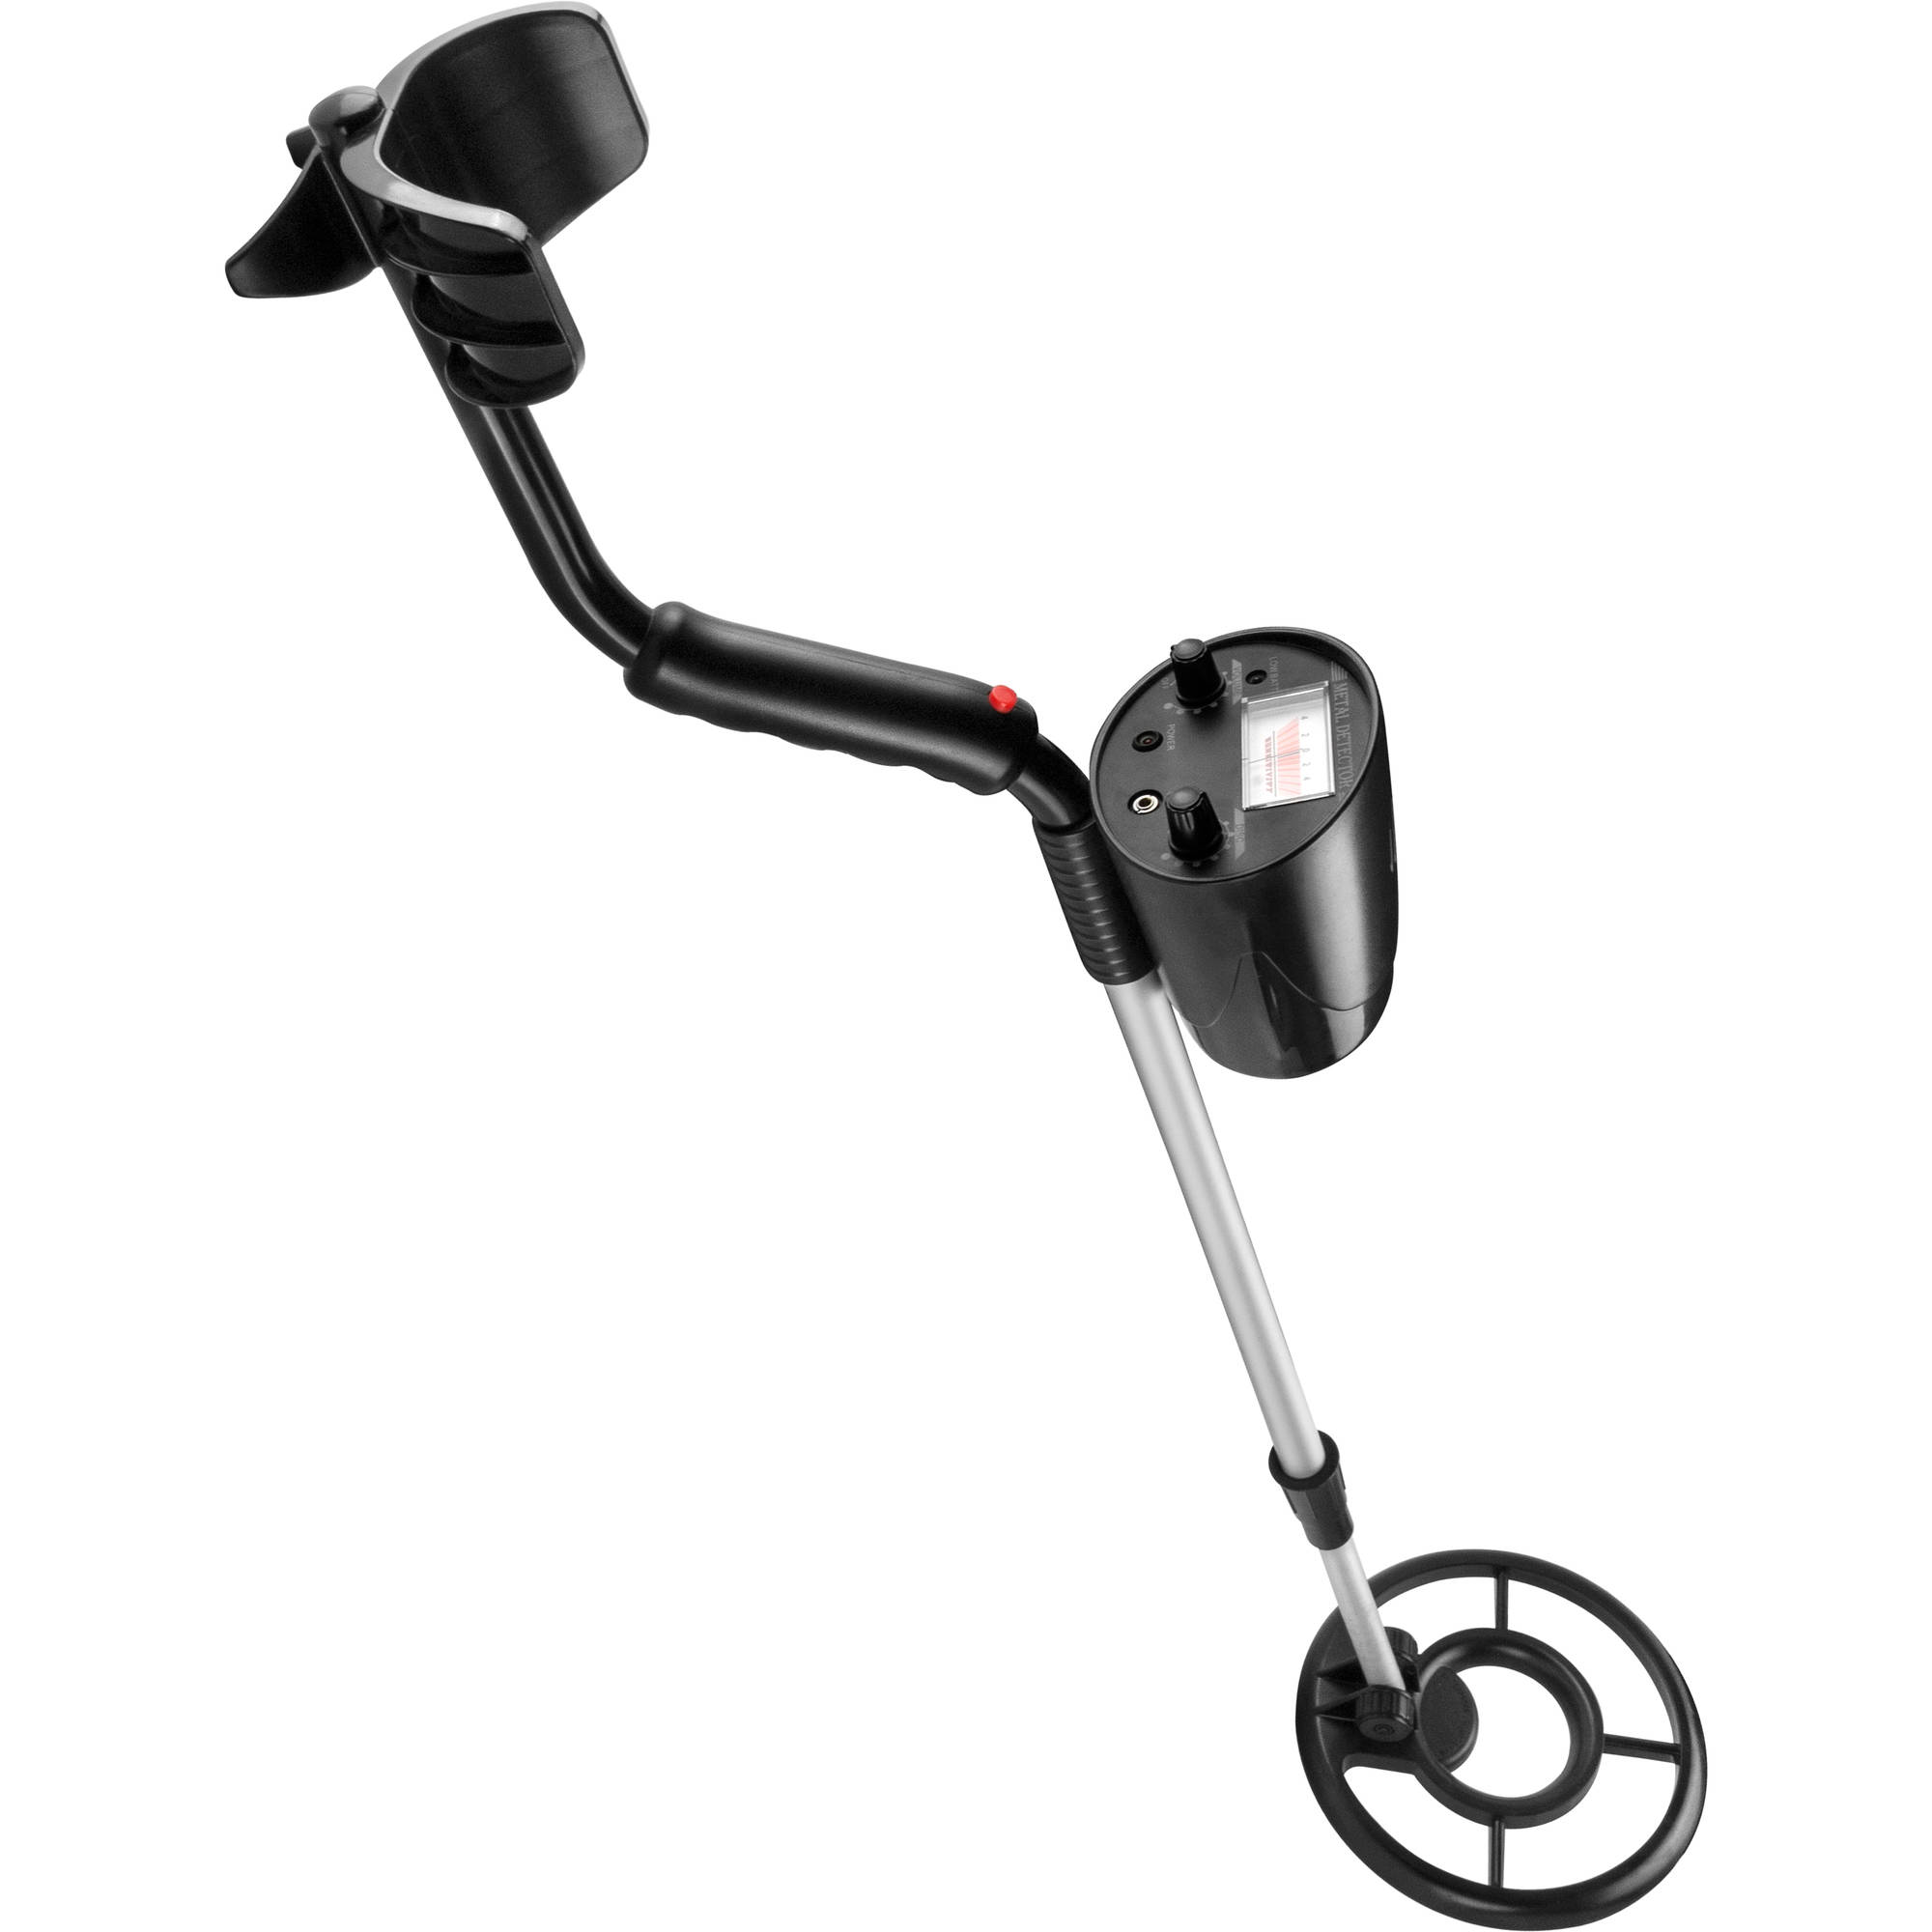 Barska D50 Metal Detector with 7 25